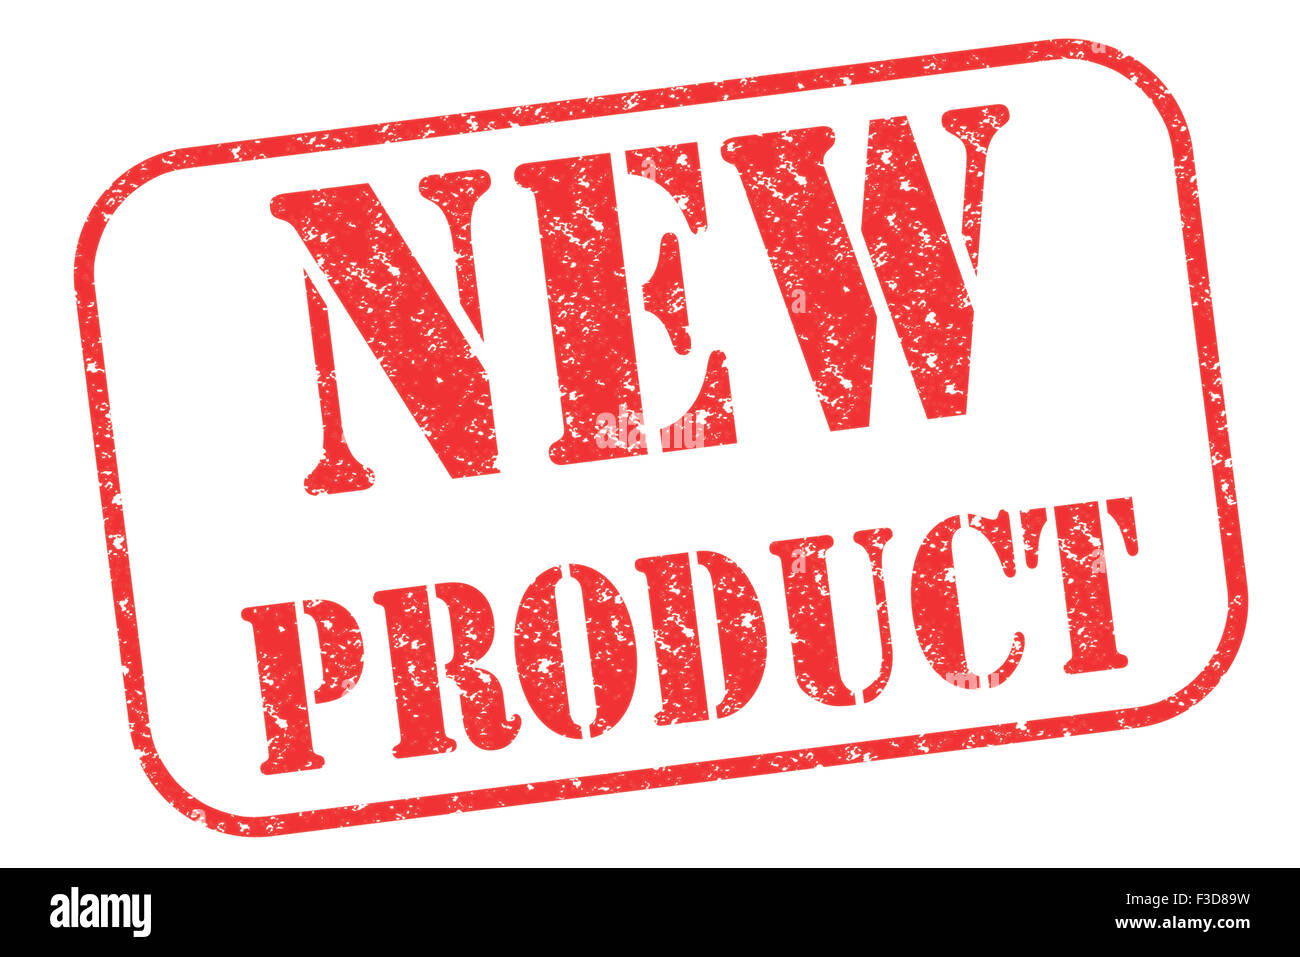 Rubber stamp 'NEW PRODUCT' on white - Stock Image